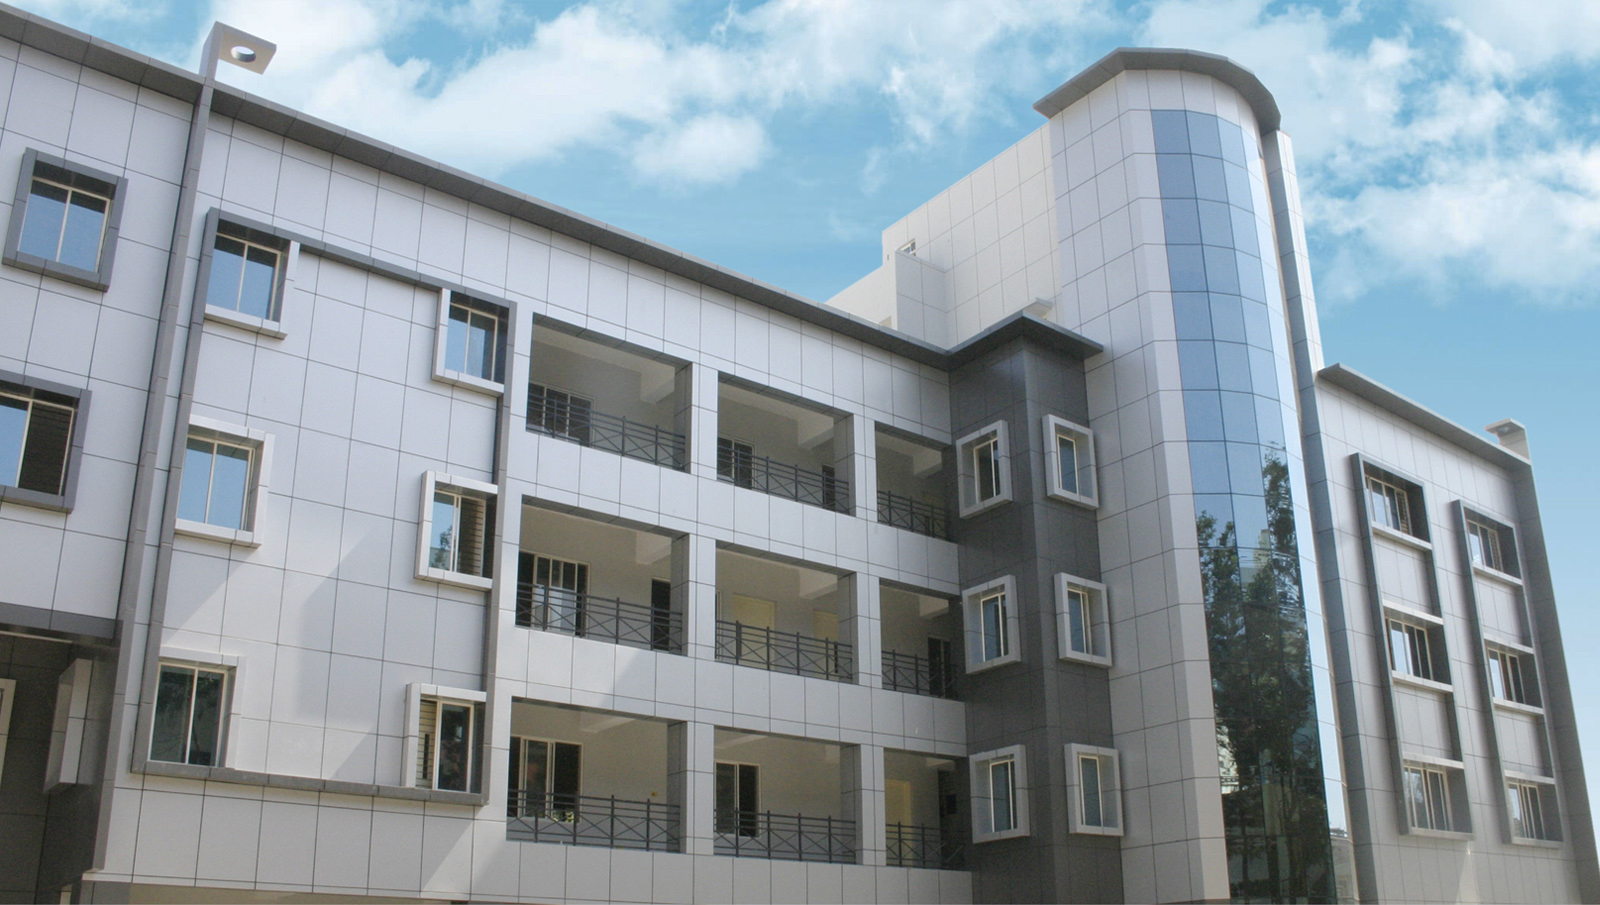 Hindustan Academy - Best Aviation Institute in India